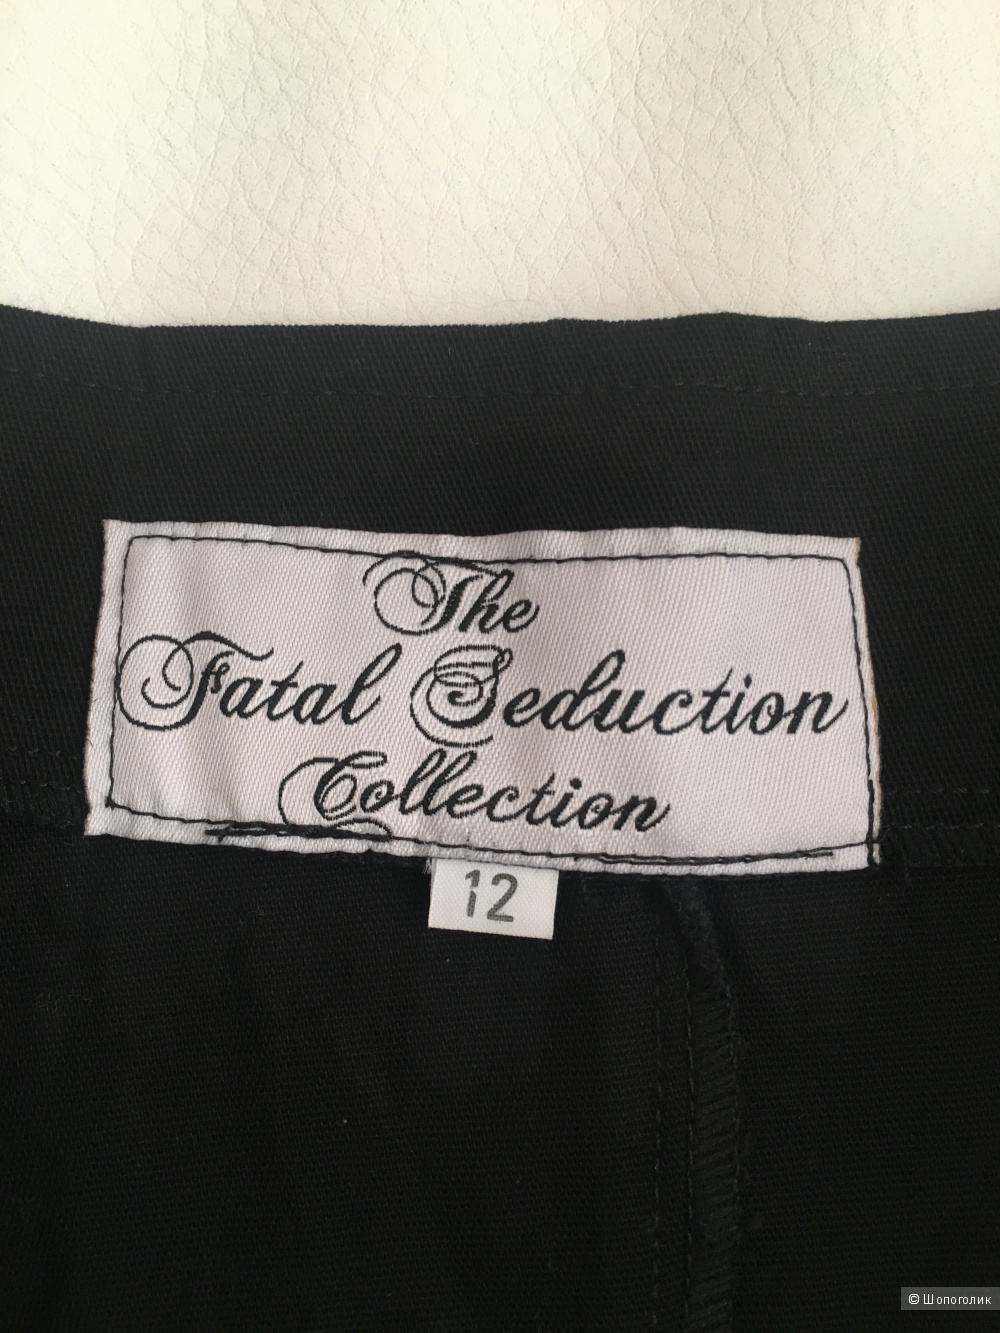 Юбка - карандаш Fatal collection, 46 размера